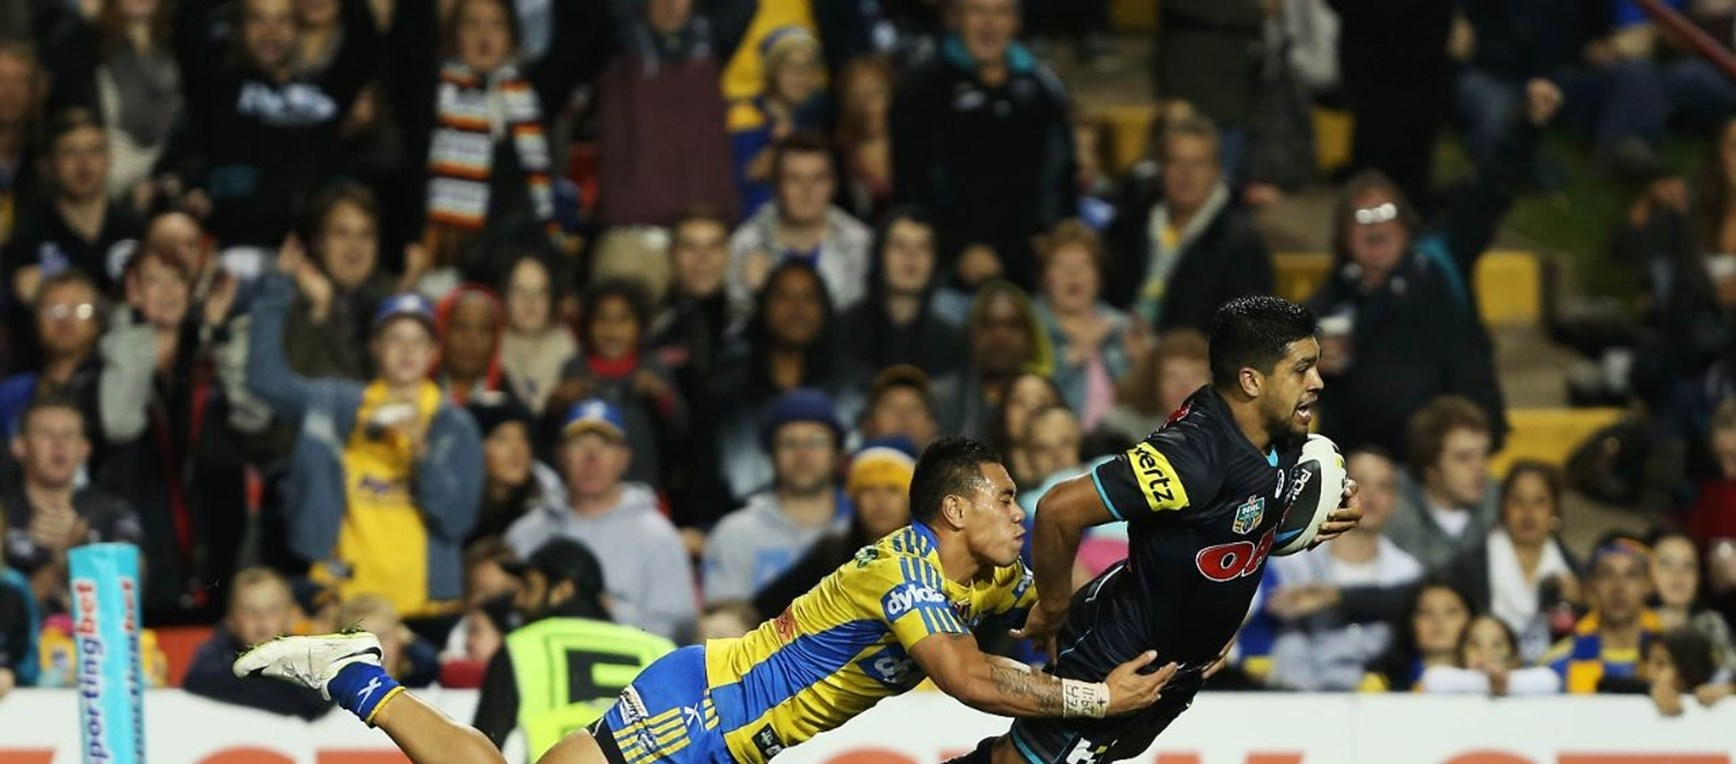 Panthers vs Eels Photo Gallery